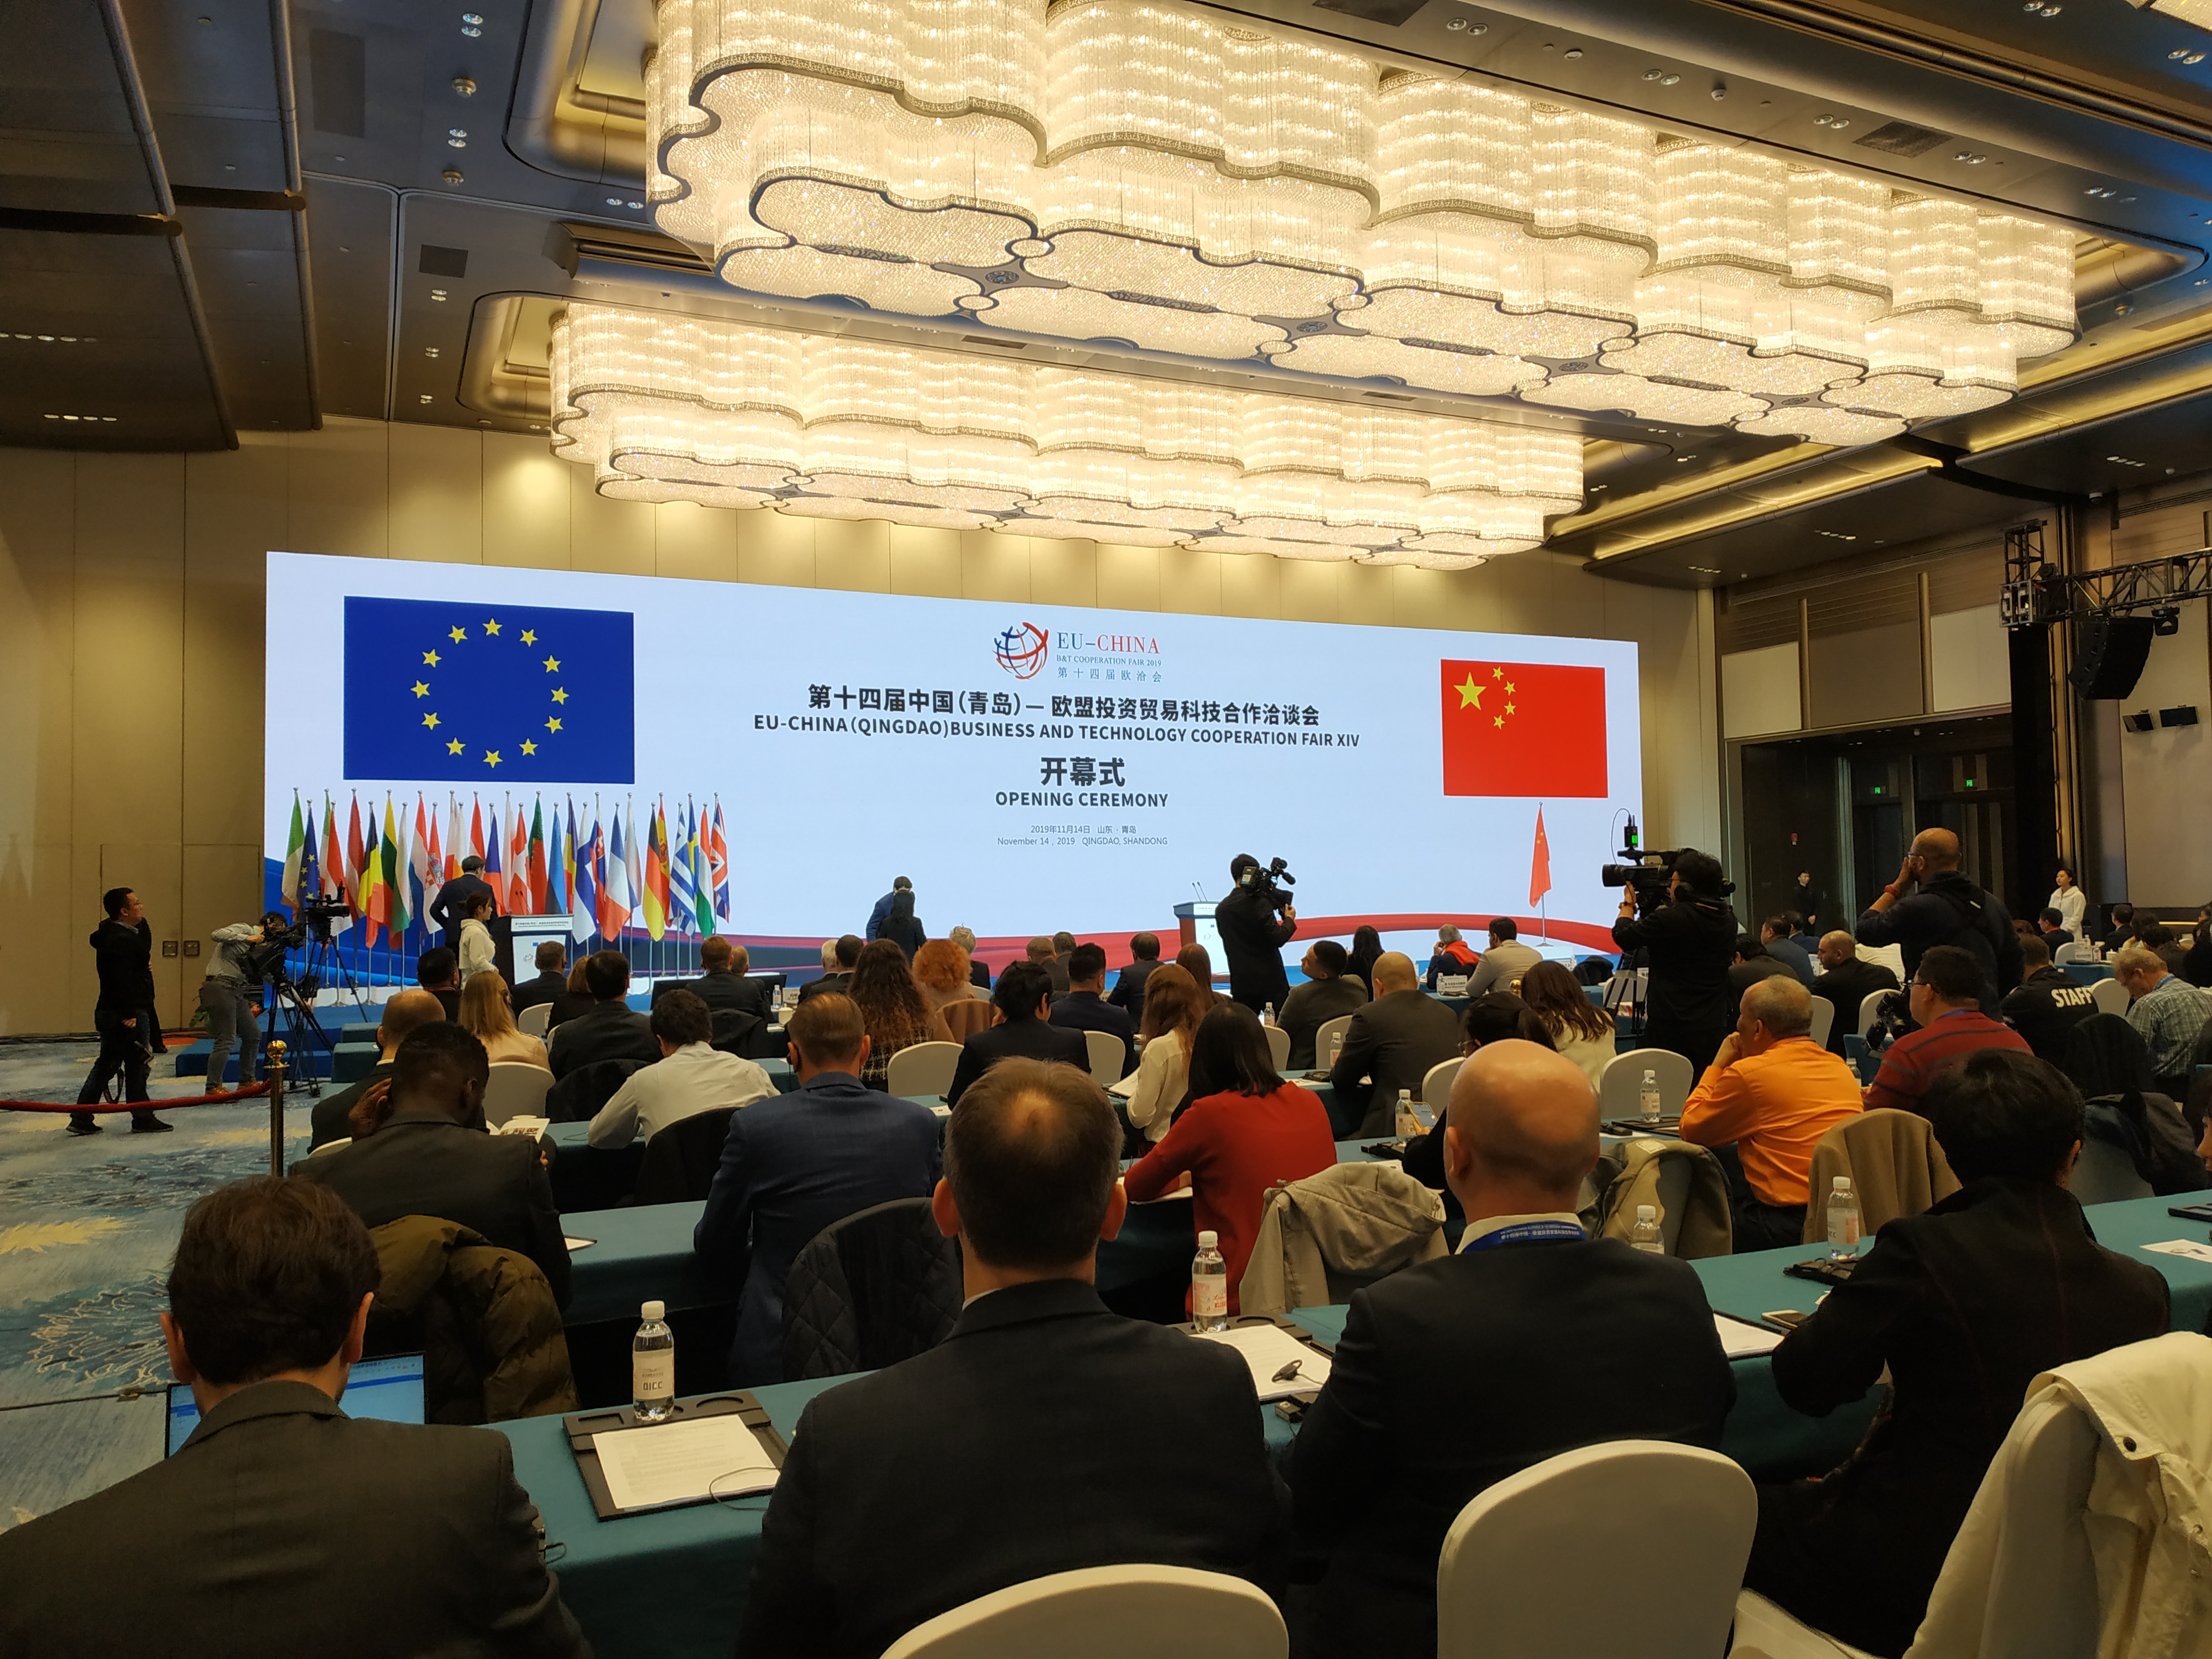 EU-China Business & Technology Cooperation Fair 2019